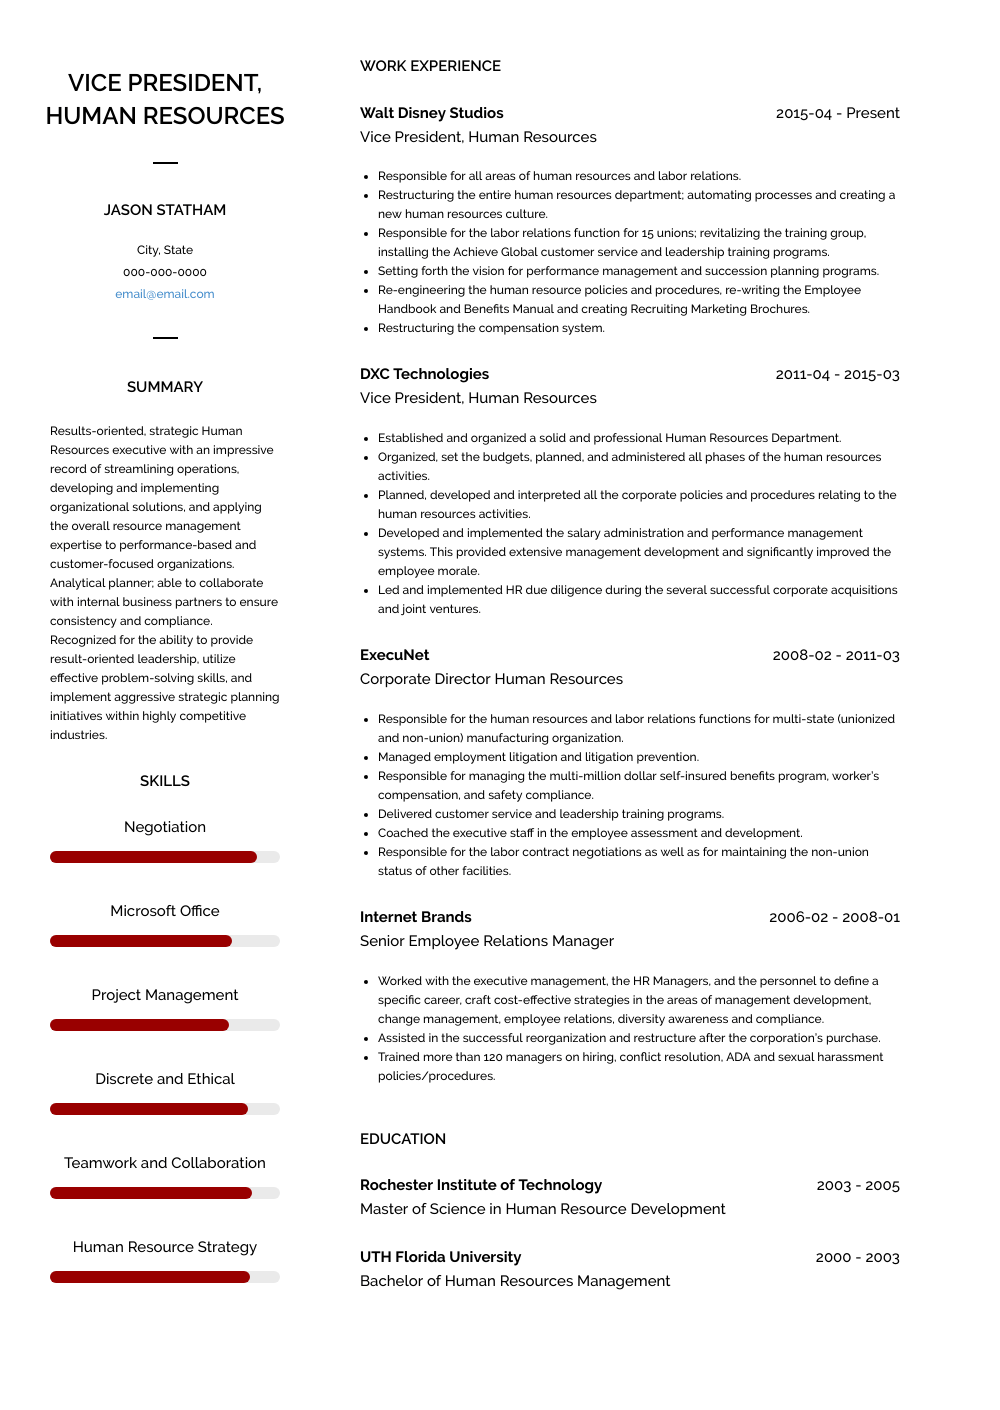 Vice President - Human Resources Resume Sample and Template